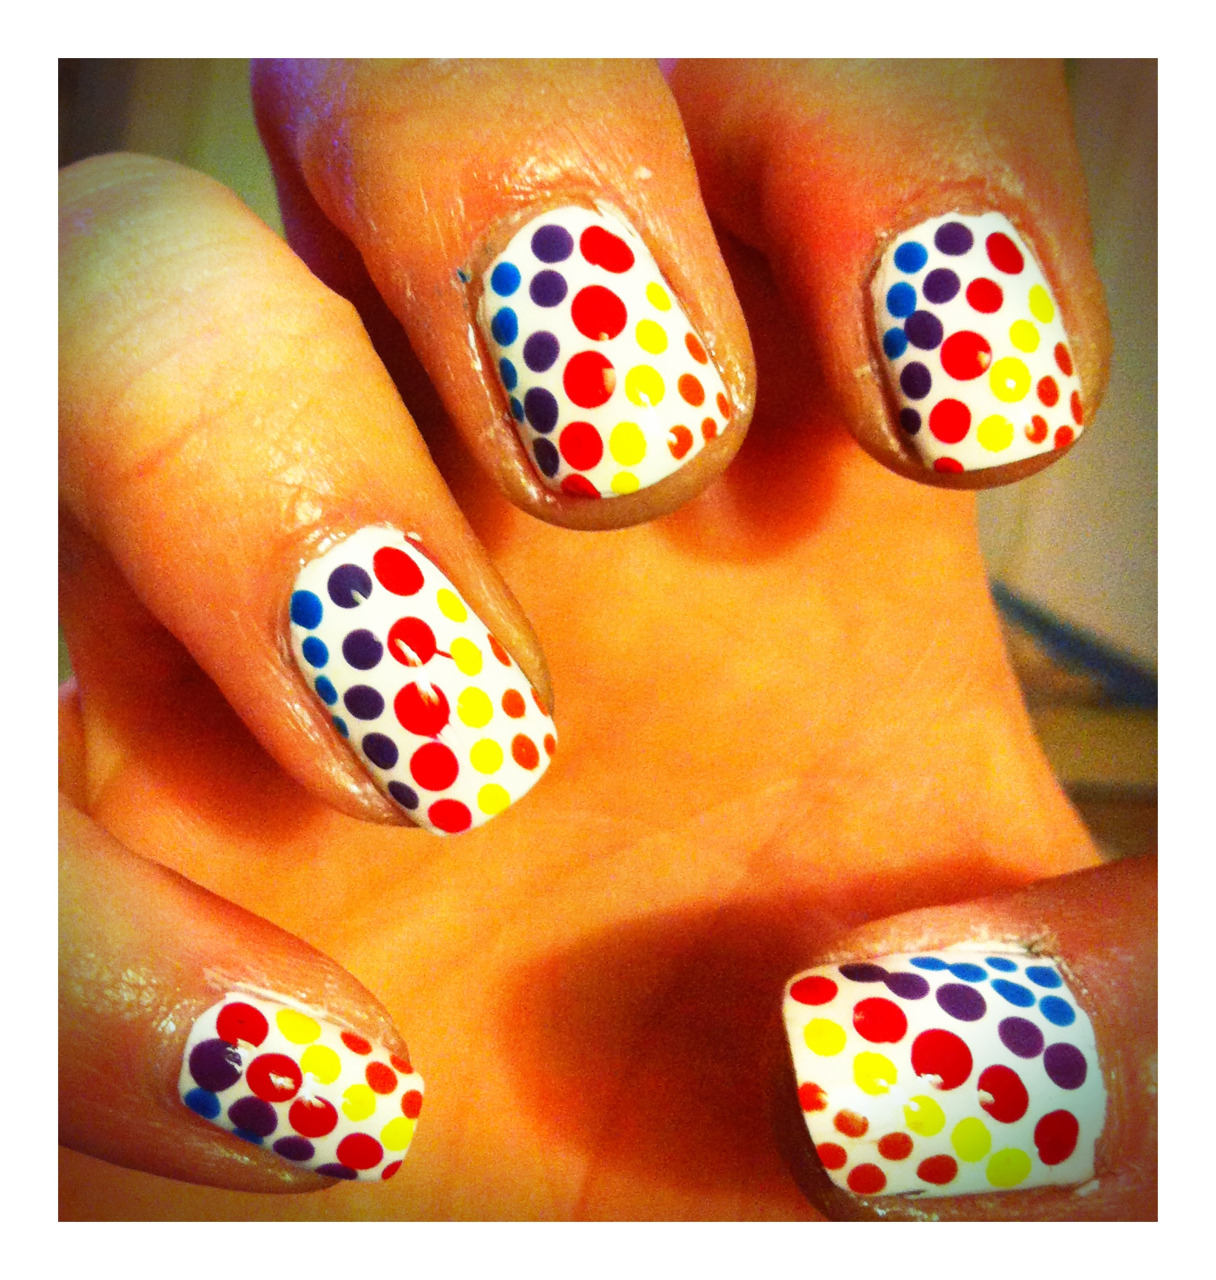 Rainbow of dots